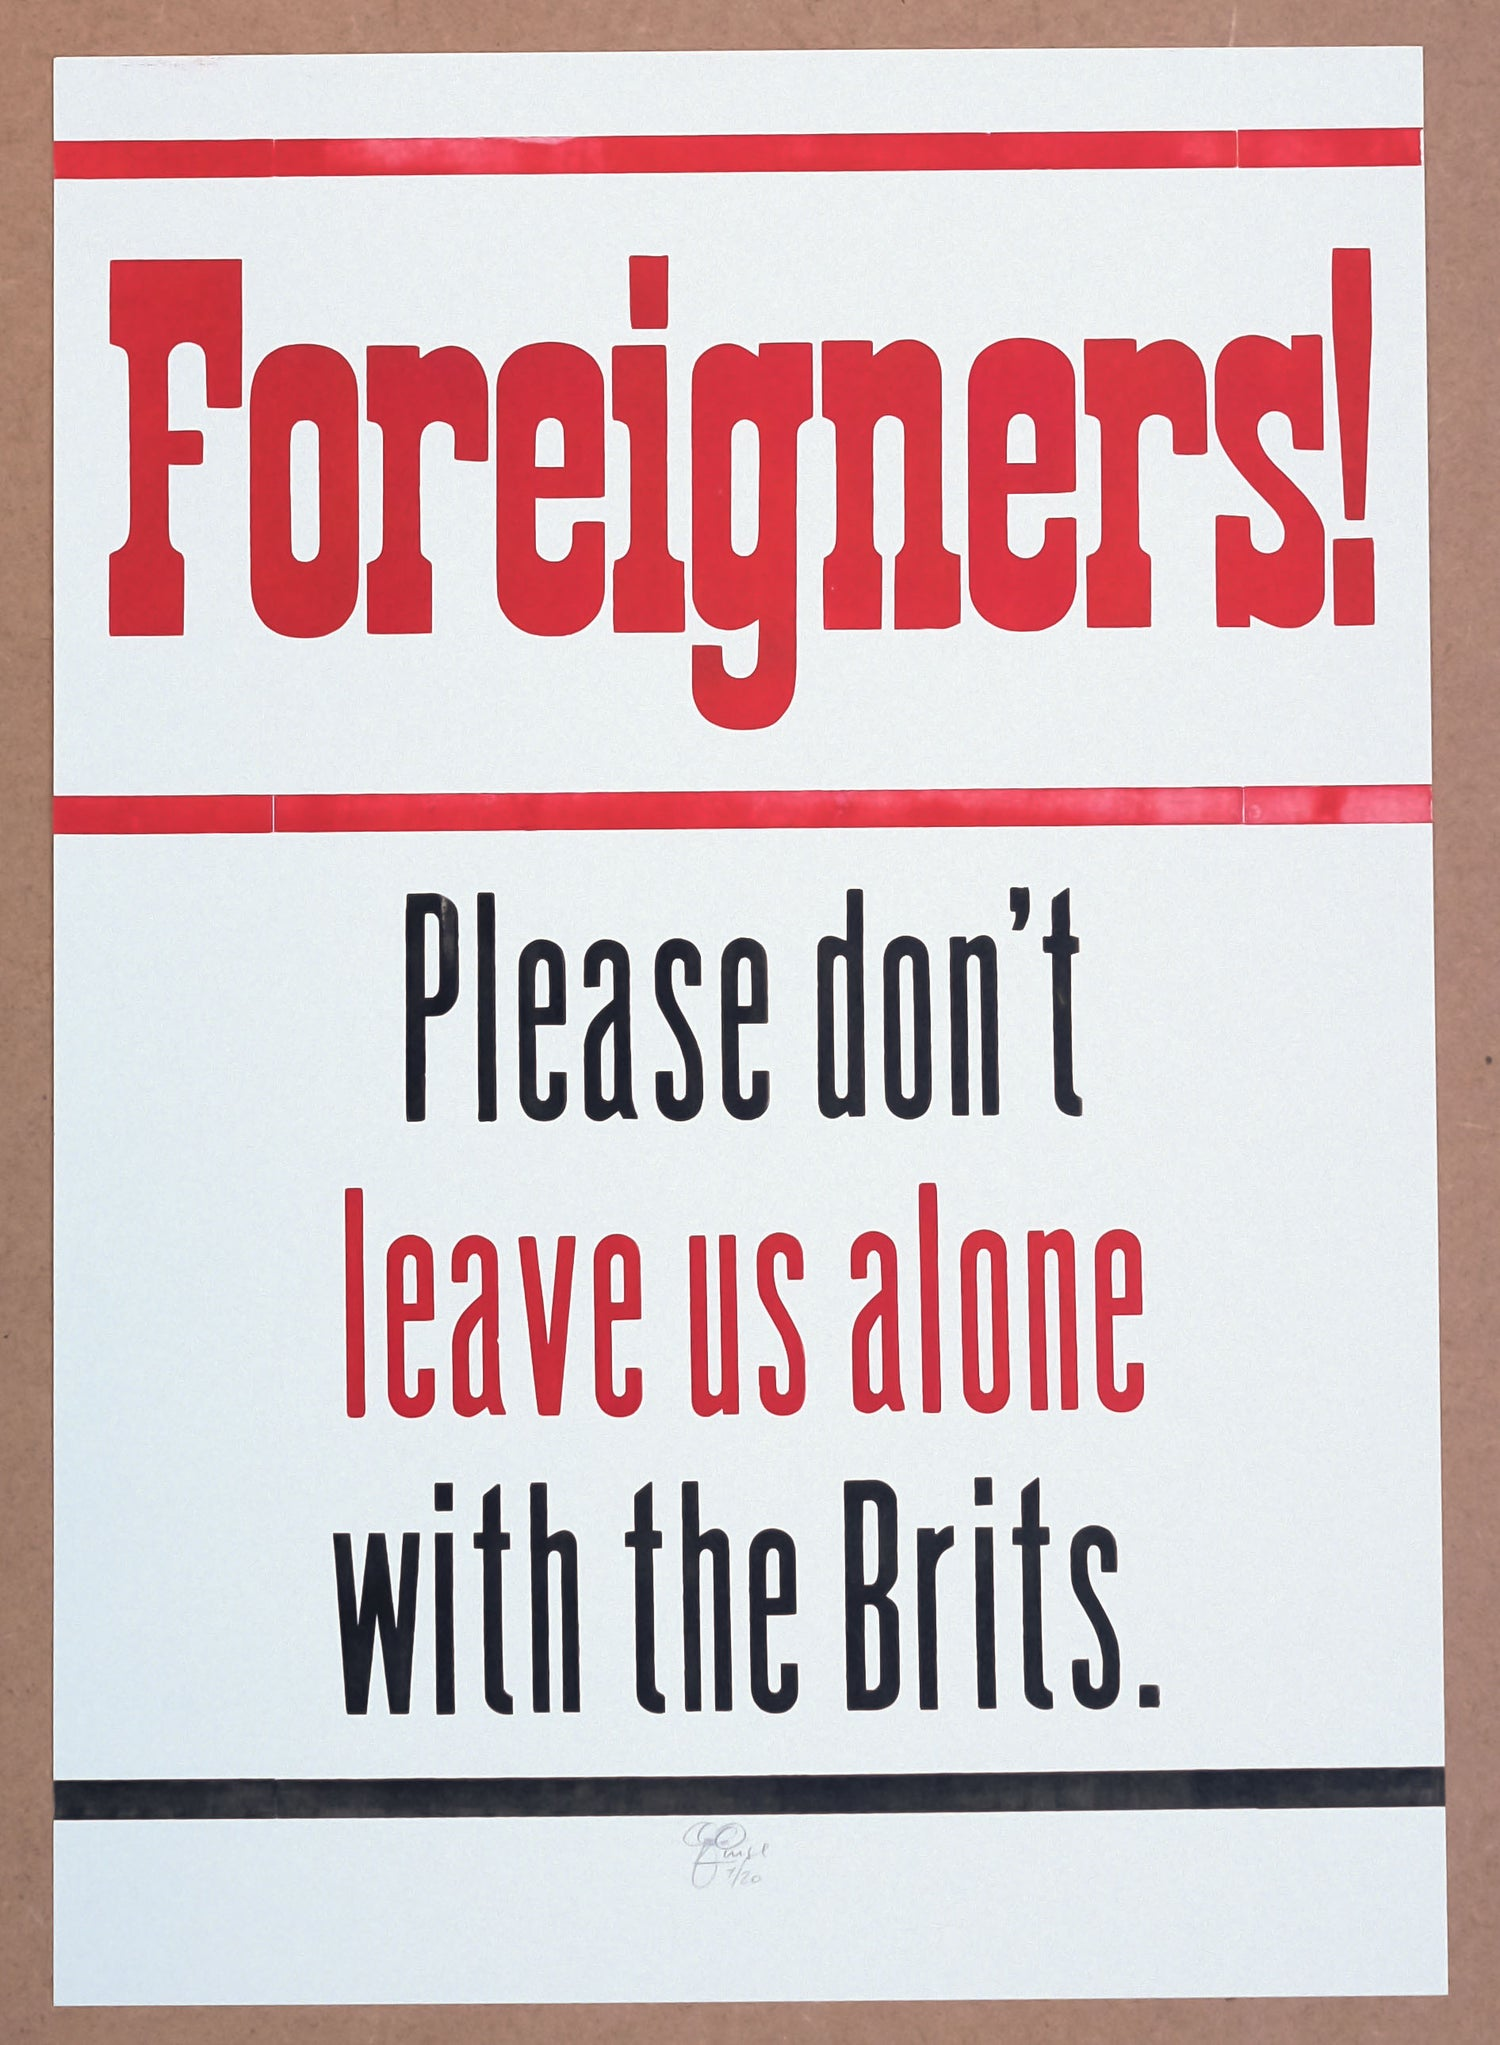 Image of Foreigners!